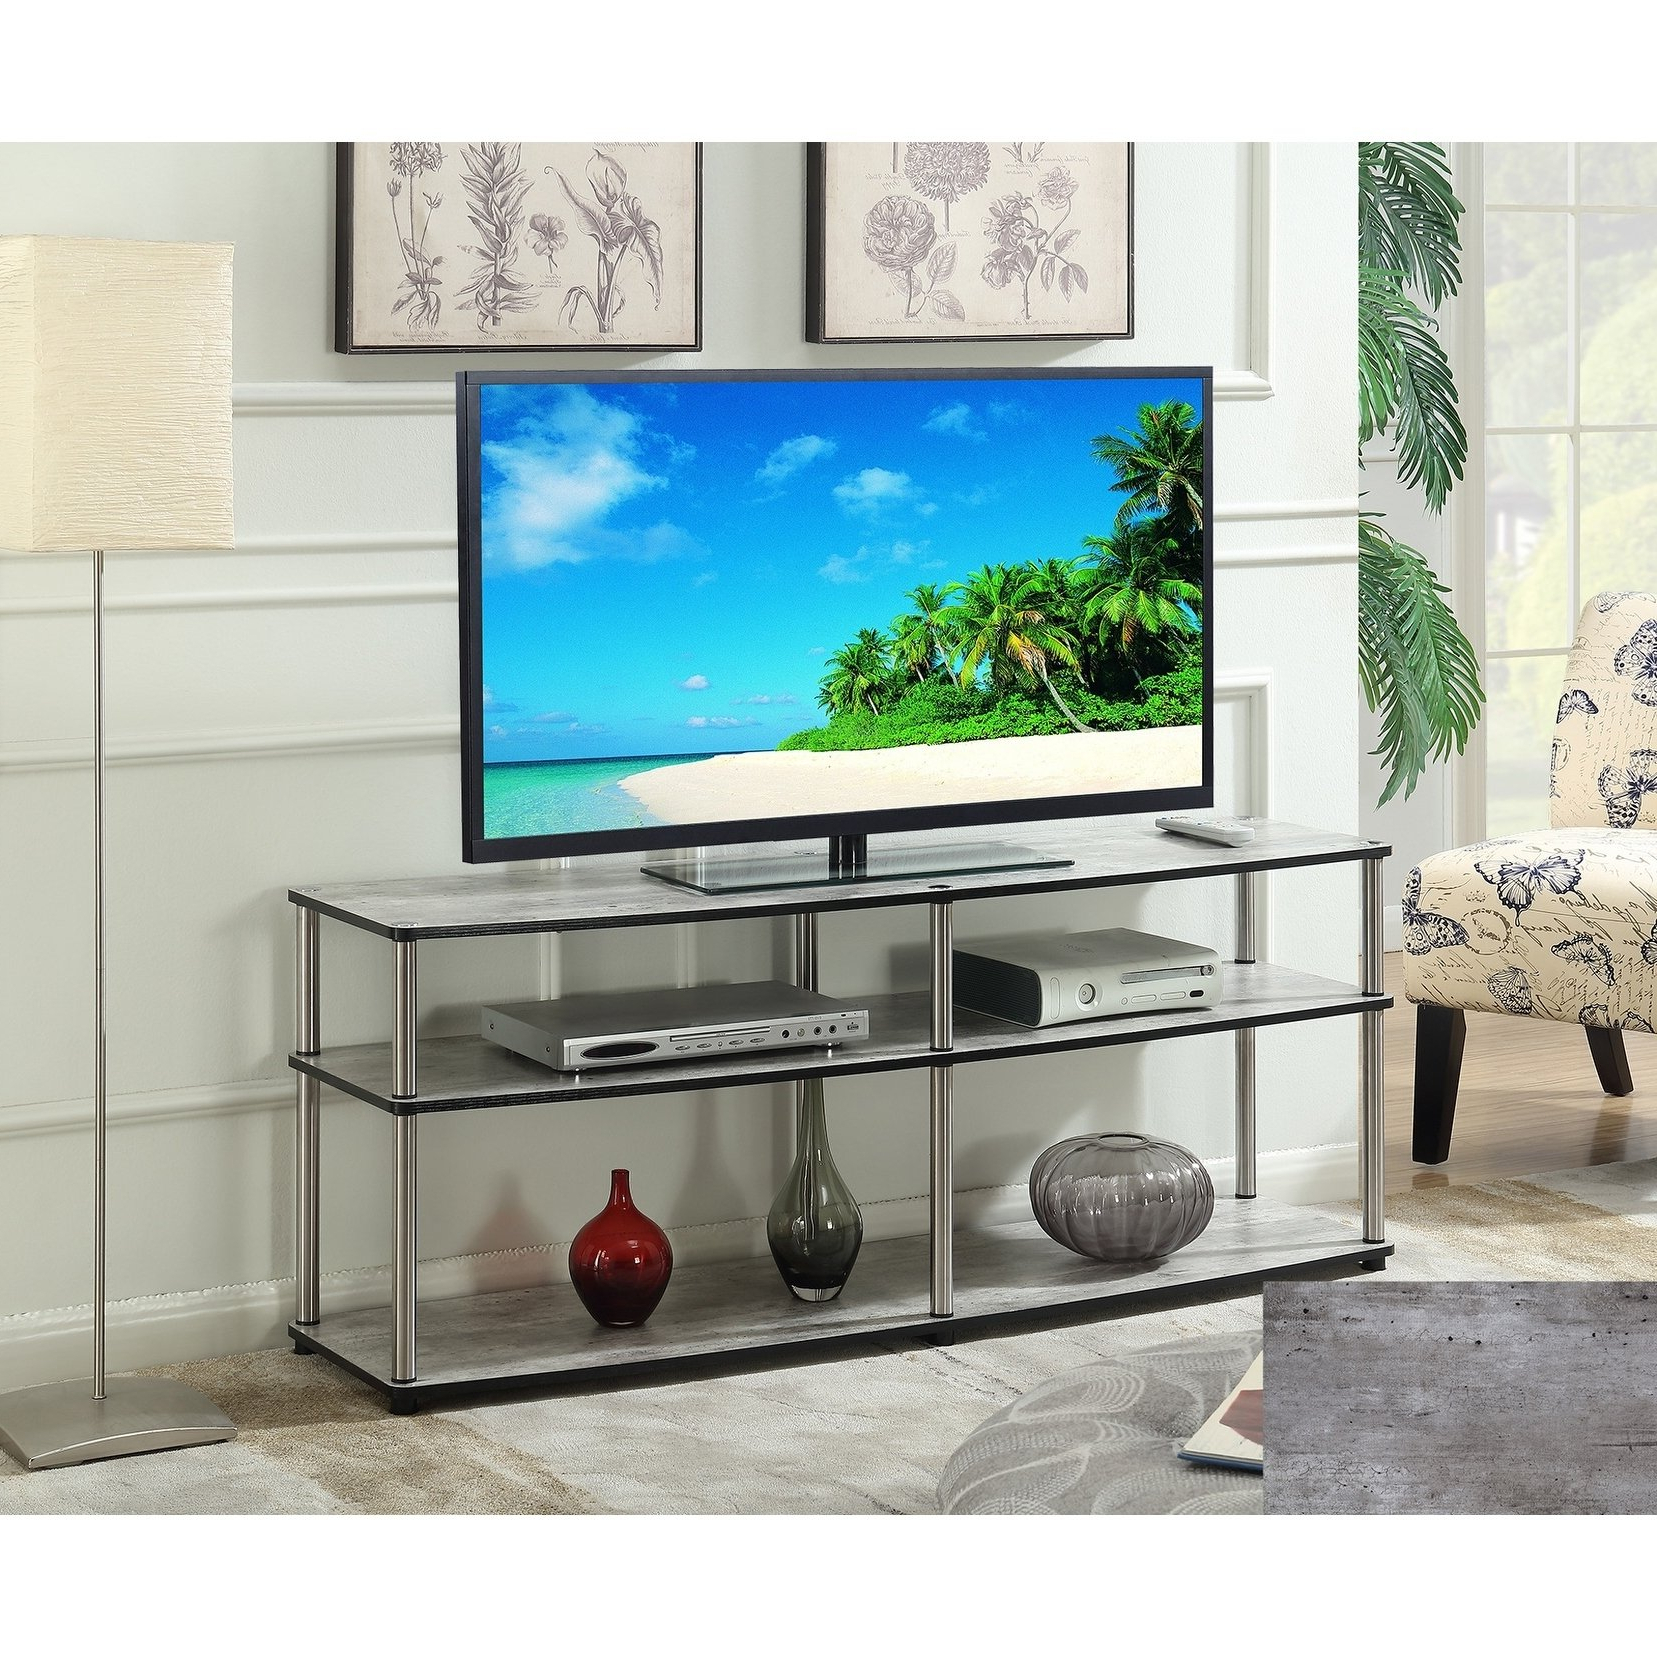 Famous 3 Tv Stands & Entertainment Centers For Less (View 15 of 20)